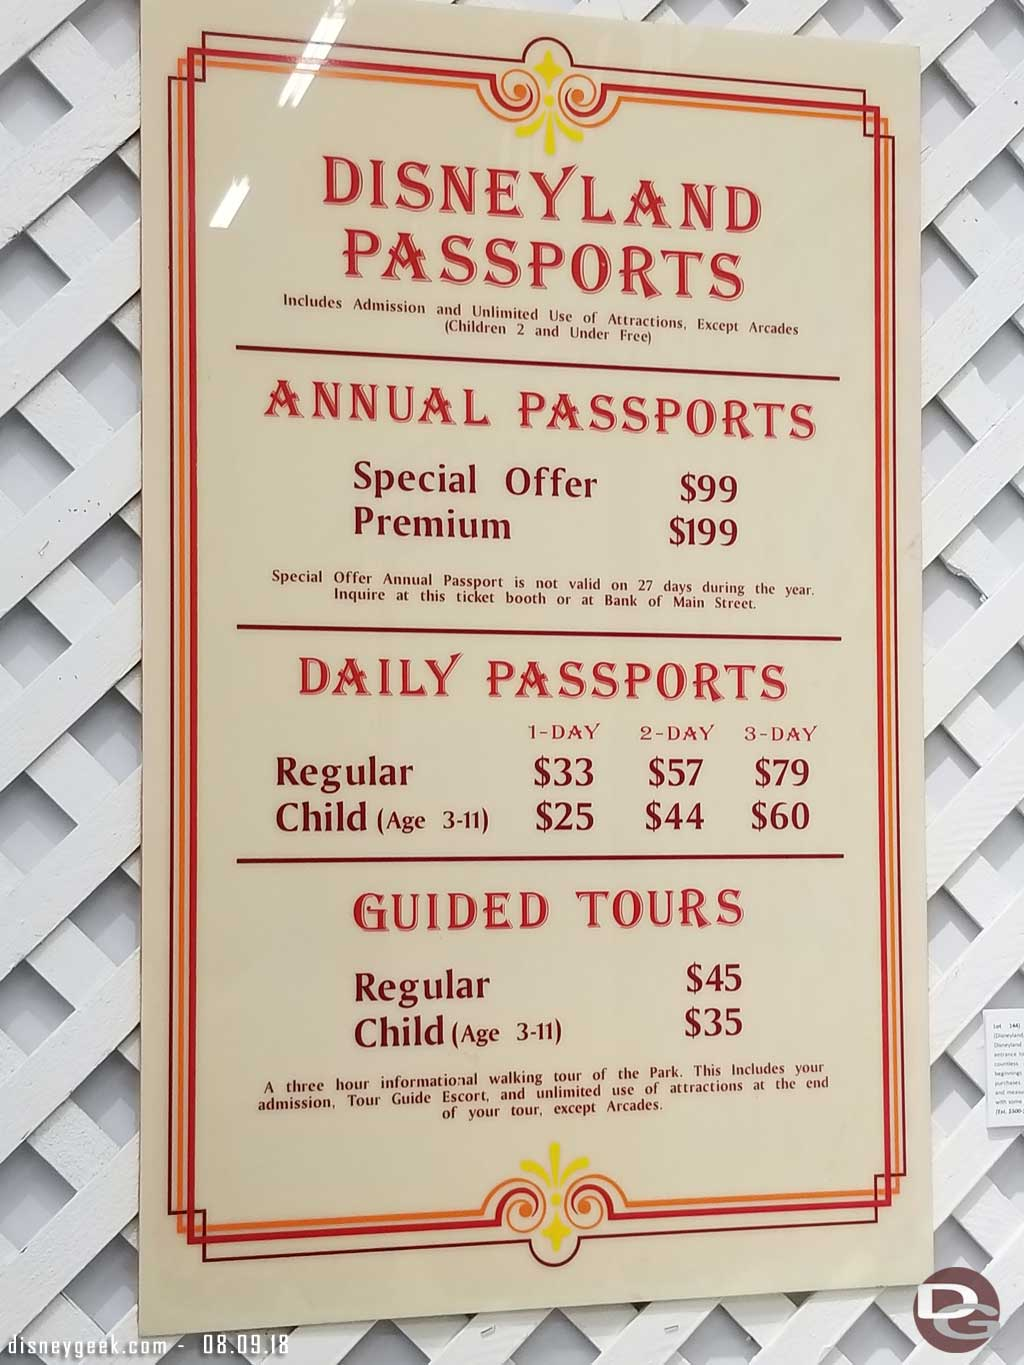 Disneyland Ticket prices from 2000